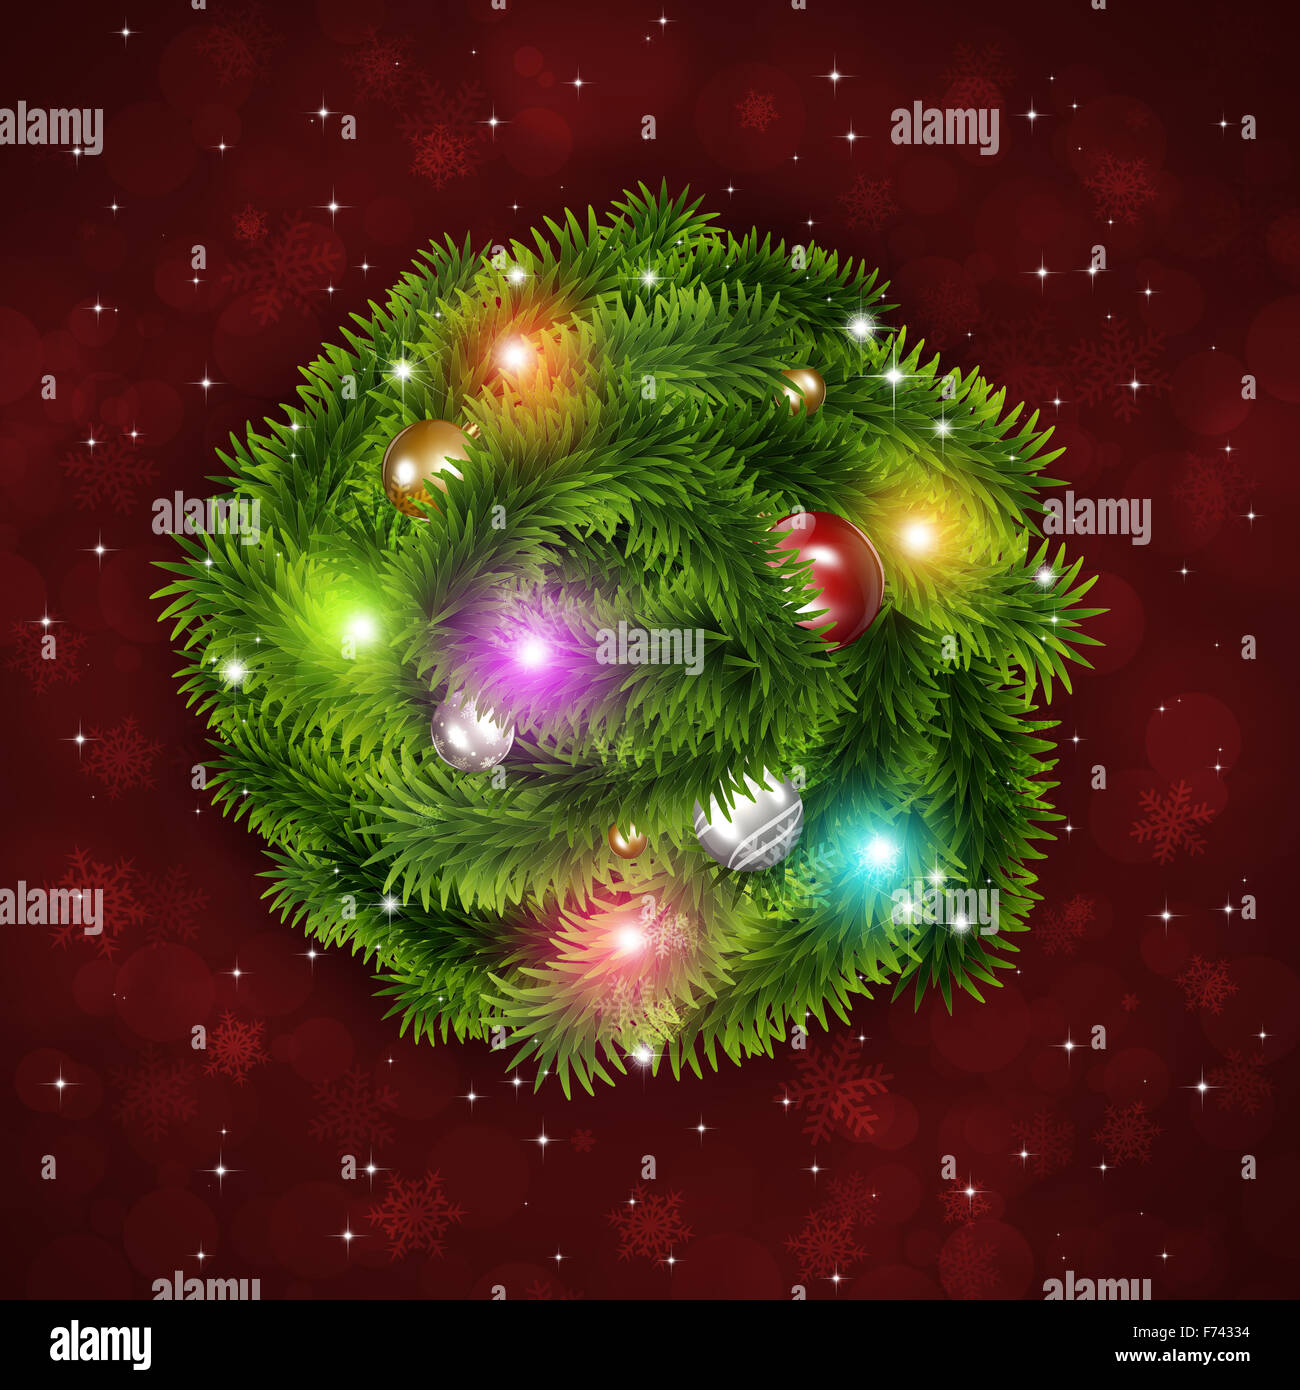 winter holiday christmas tree ring on red background with blurry lights and stars - Stock Image